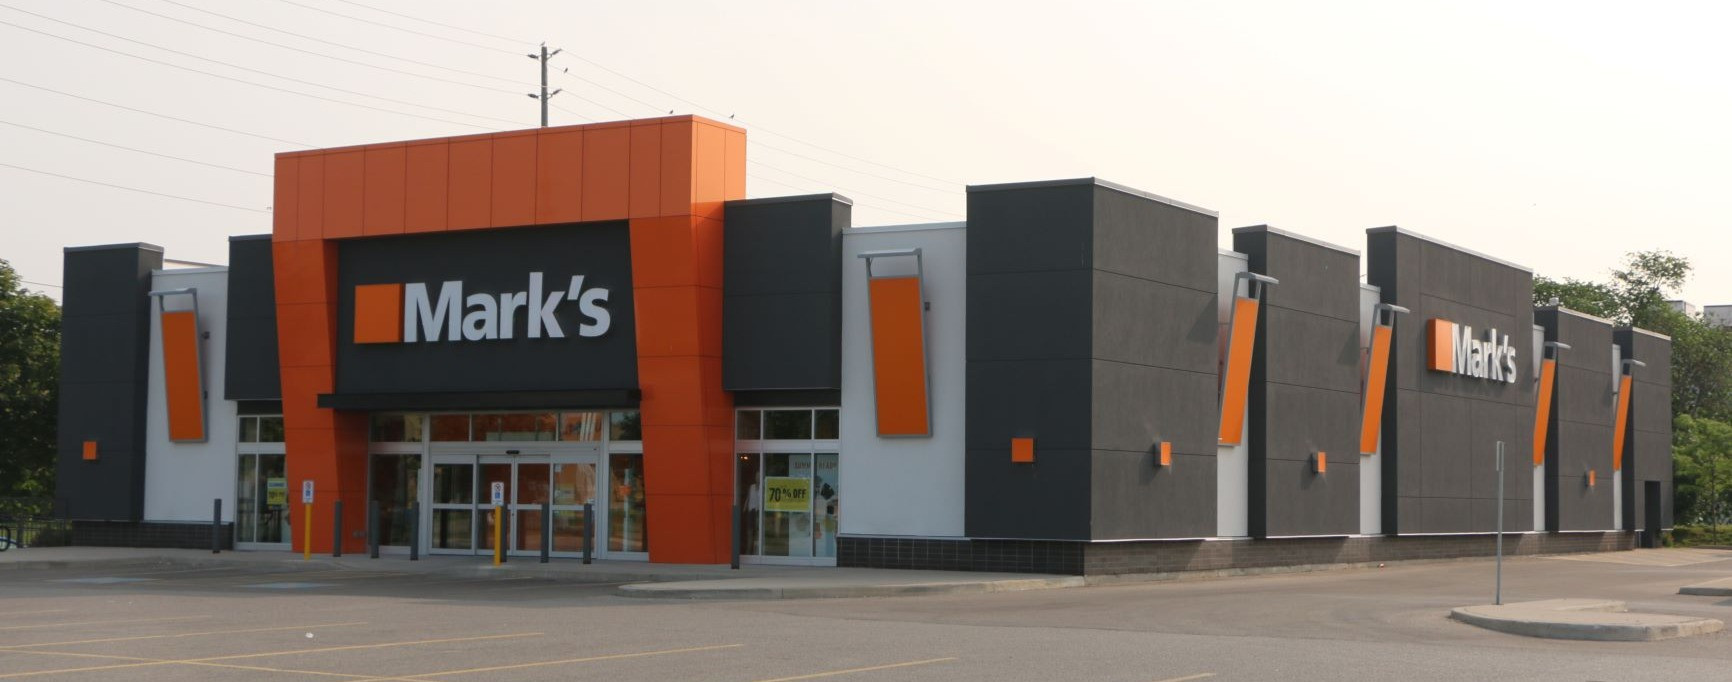 MARK'S WORKS WAREHOUSE, OSHAWA, ON